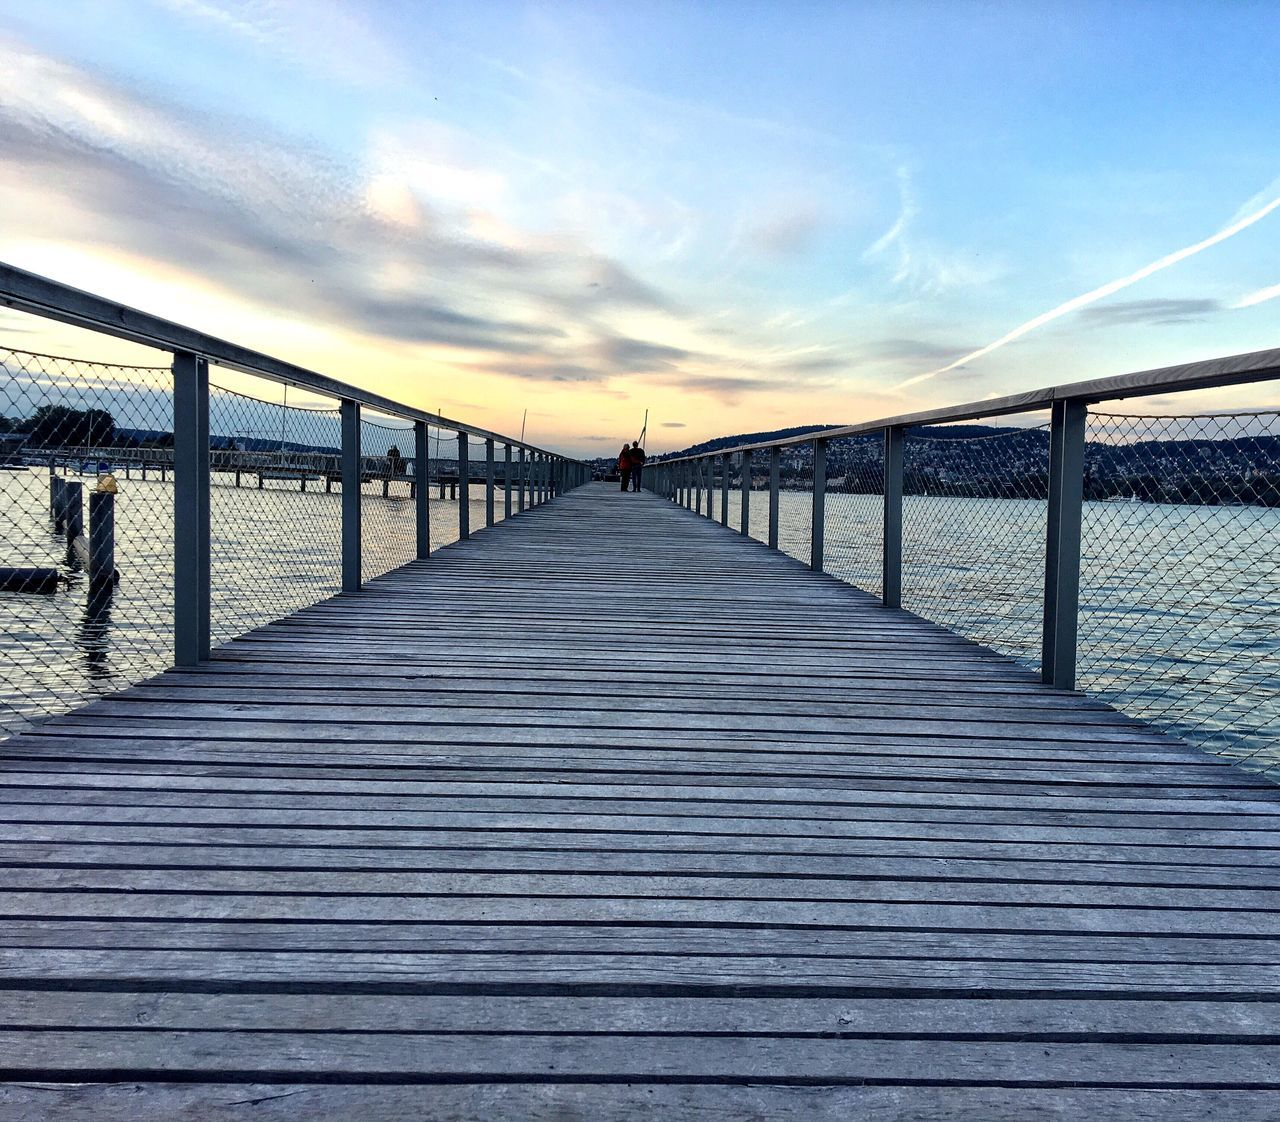 Sunset Outdoors Railing Water Boardwalk The Way Forward Sky Nature Bridge - Man Made Structure Day Sea Switzerland Zürich No People Architecture